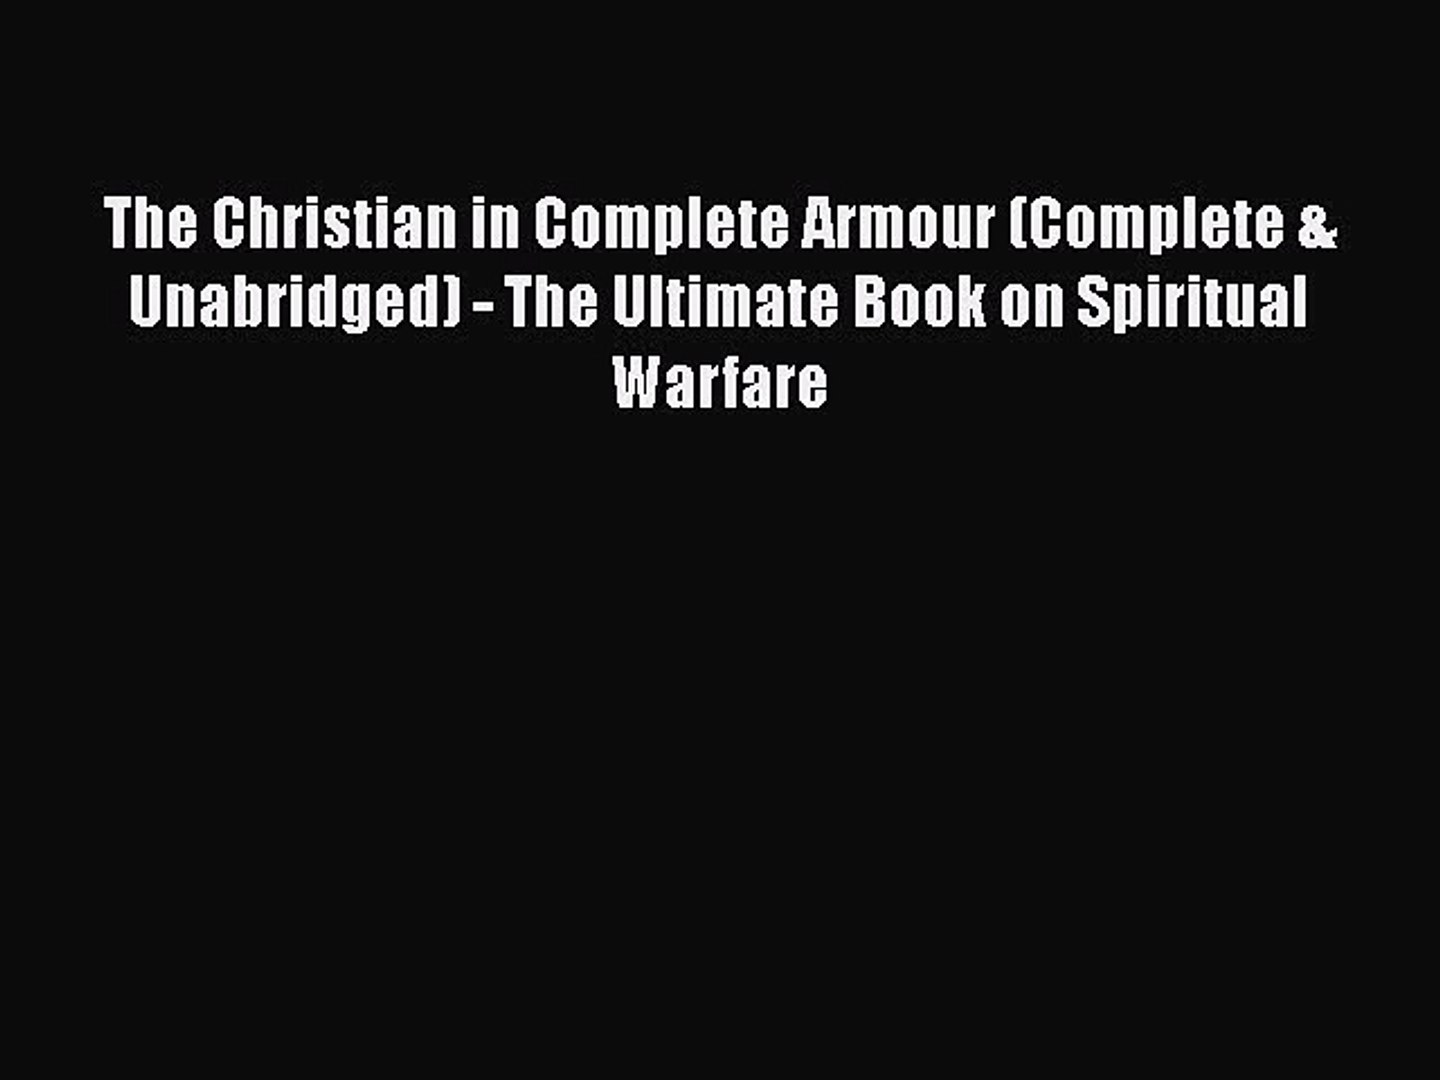 [PDF Download] The Christian in Complete Armour (Complete & Unabridged) -  The Ultimate Book